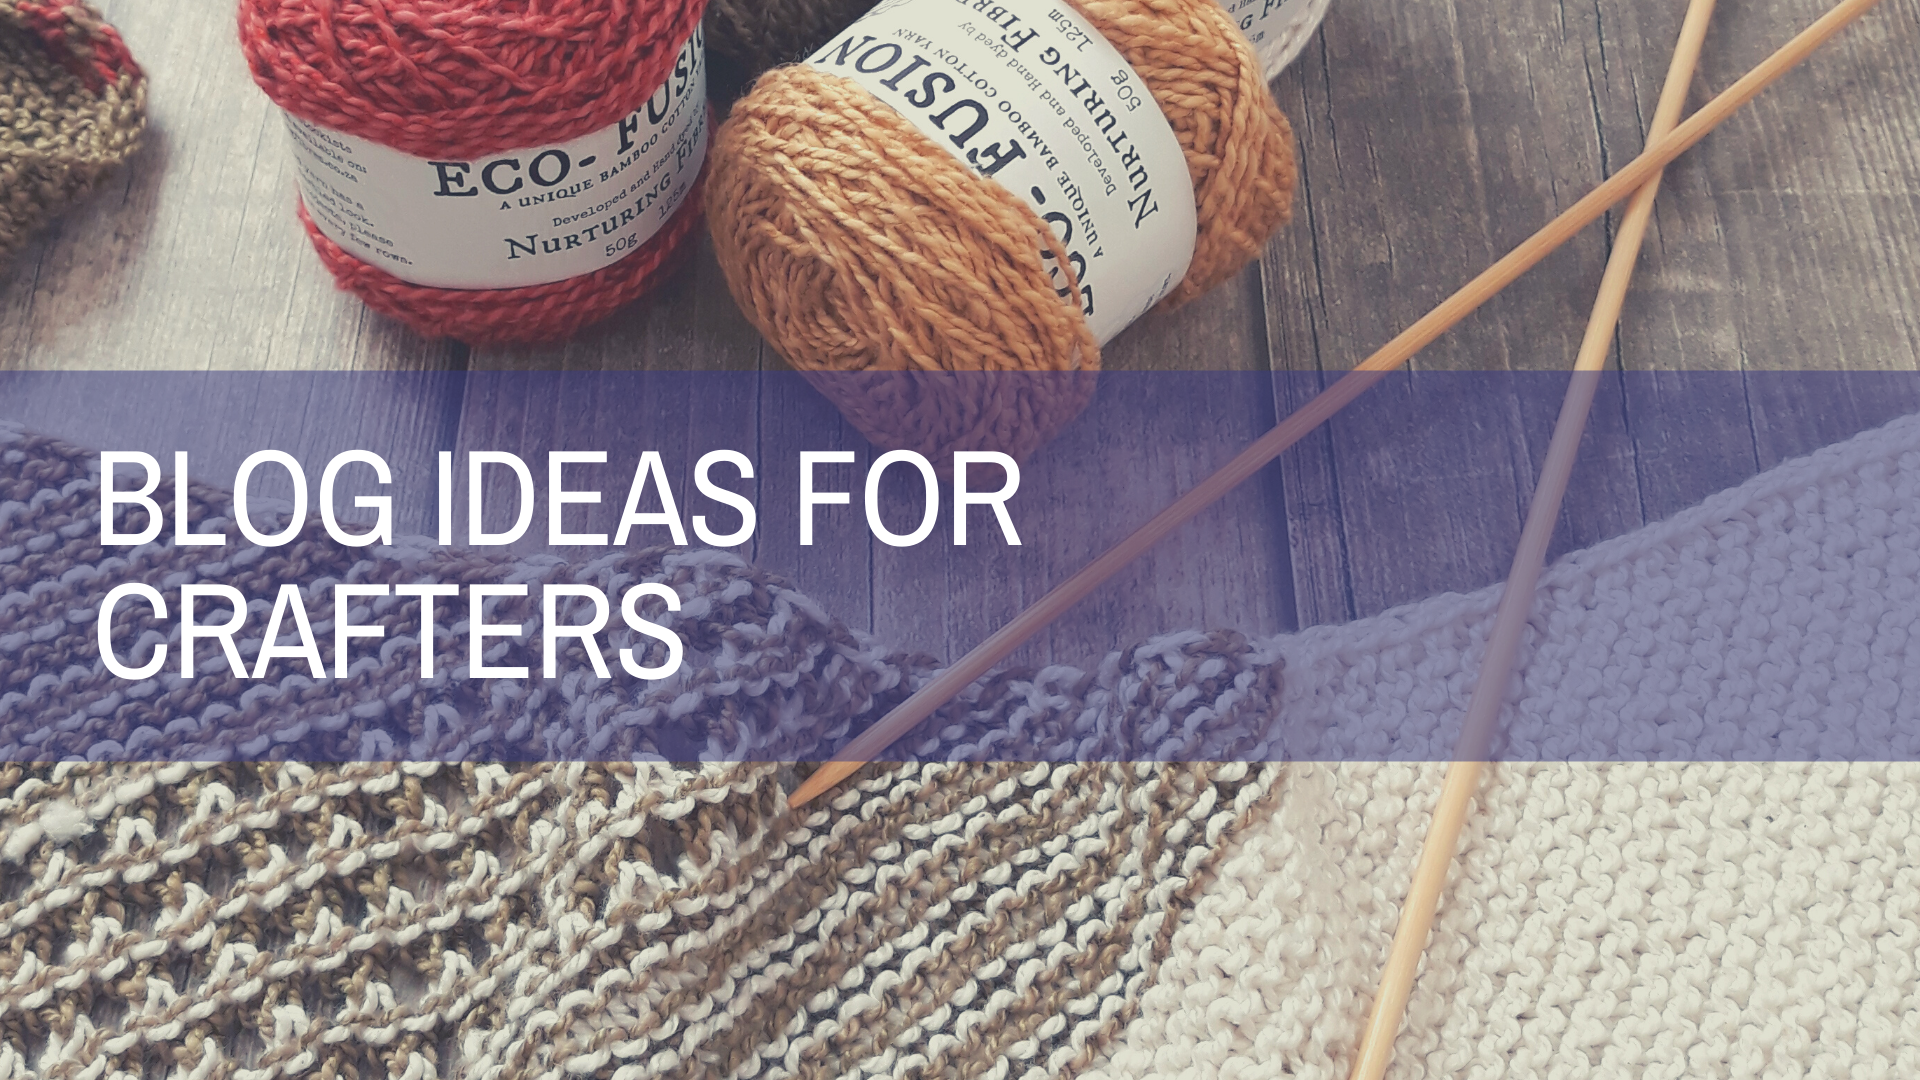 Blog Ideas for Crafters | Amplihigher Copywriting